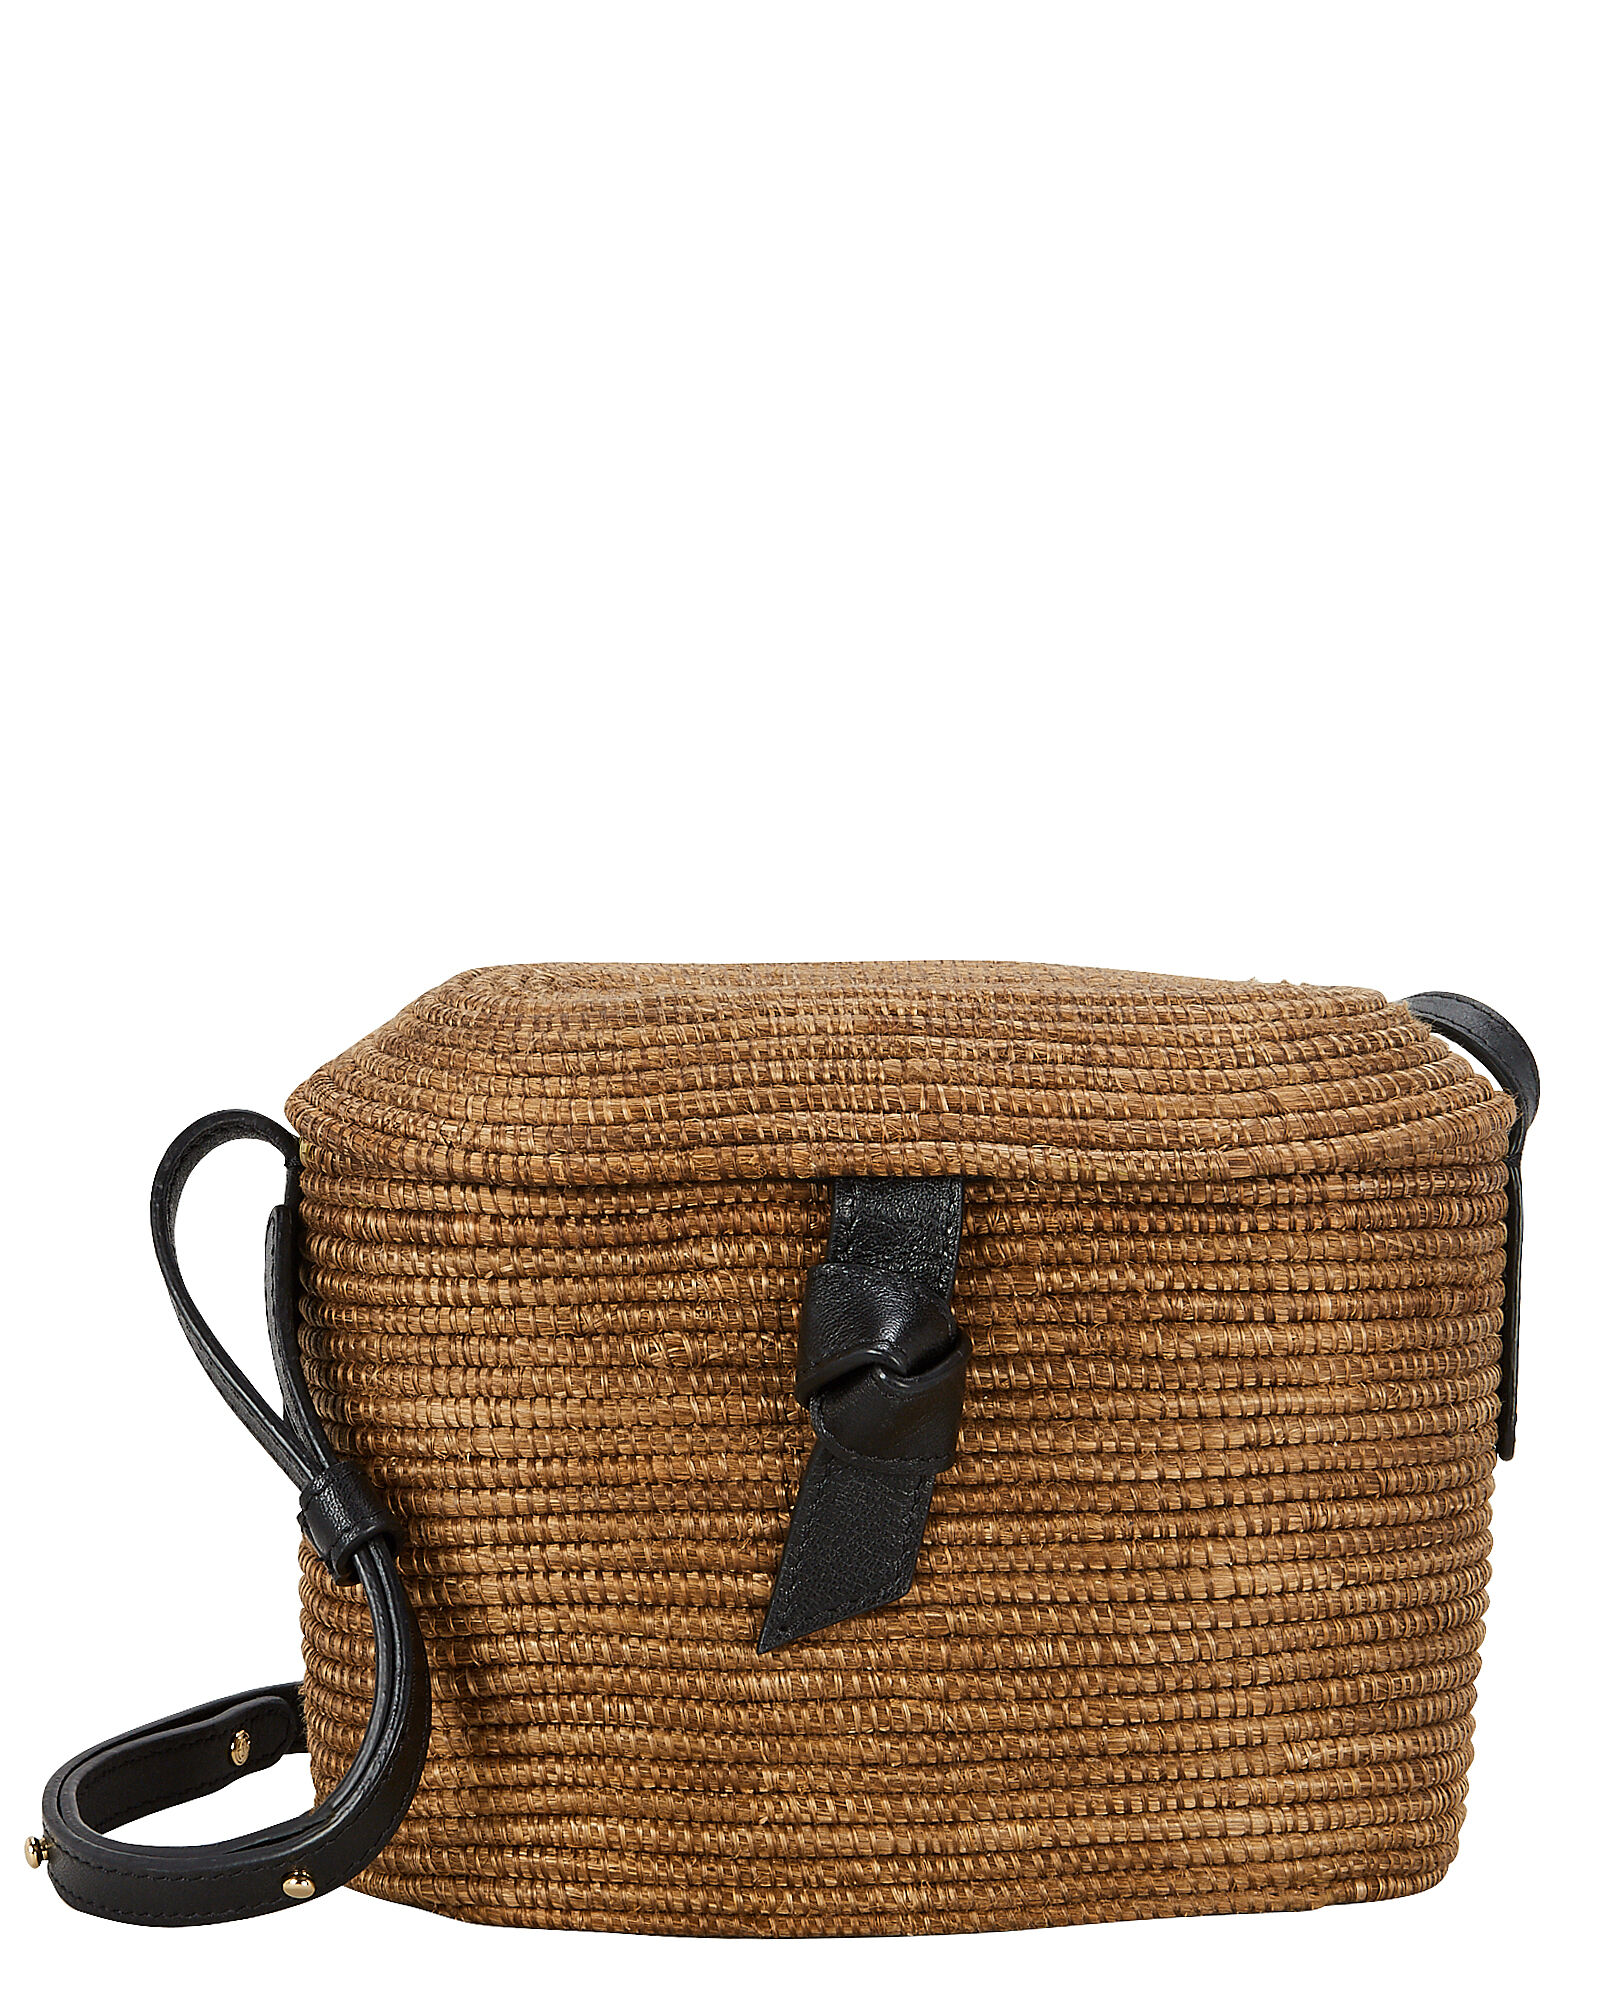 Original Crossbody Bag, TAN/BLACK, hi-res